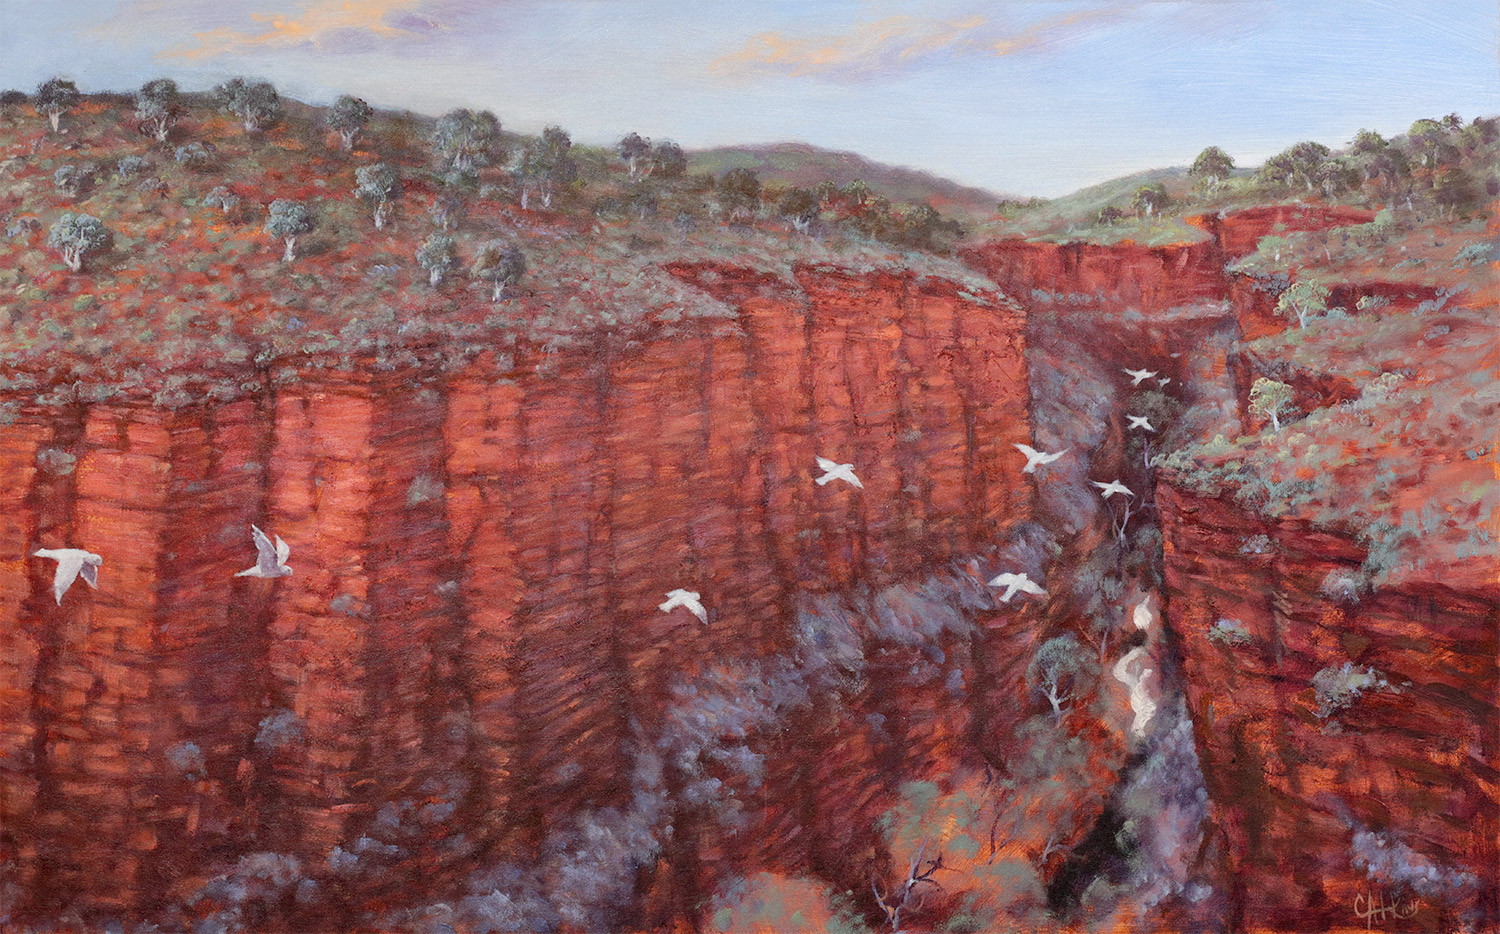 Colin Atkins - 'Karijini Diptych' Right Painting